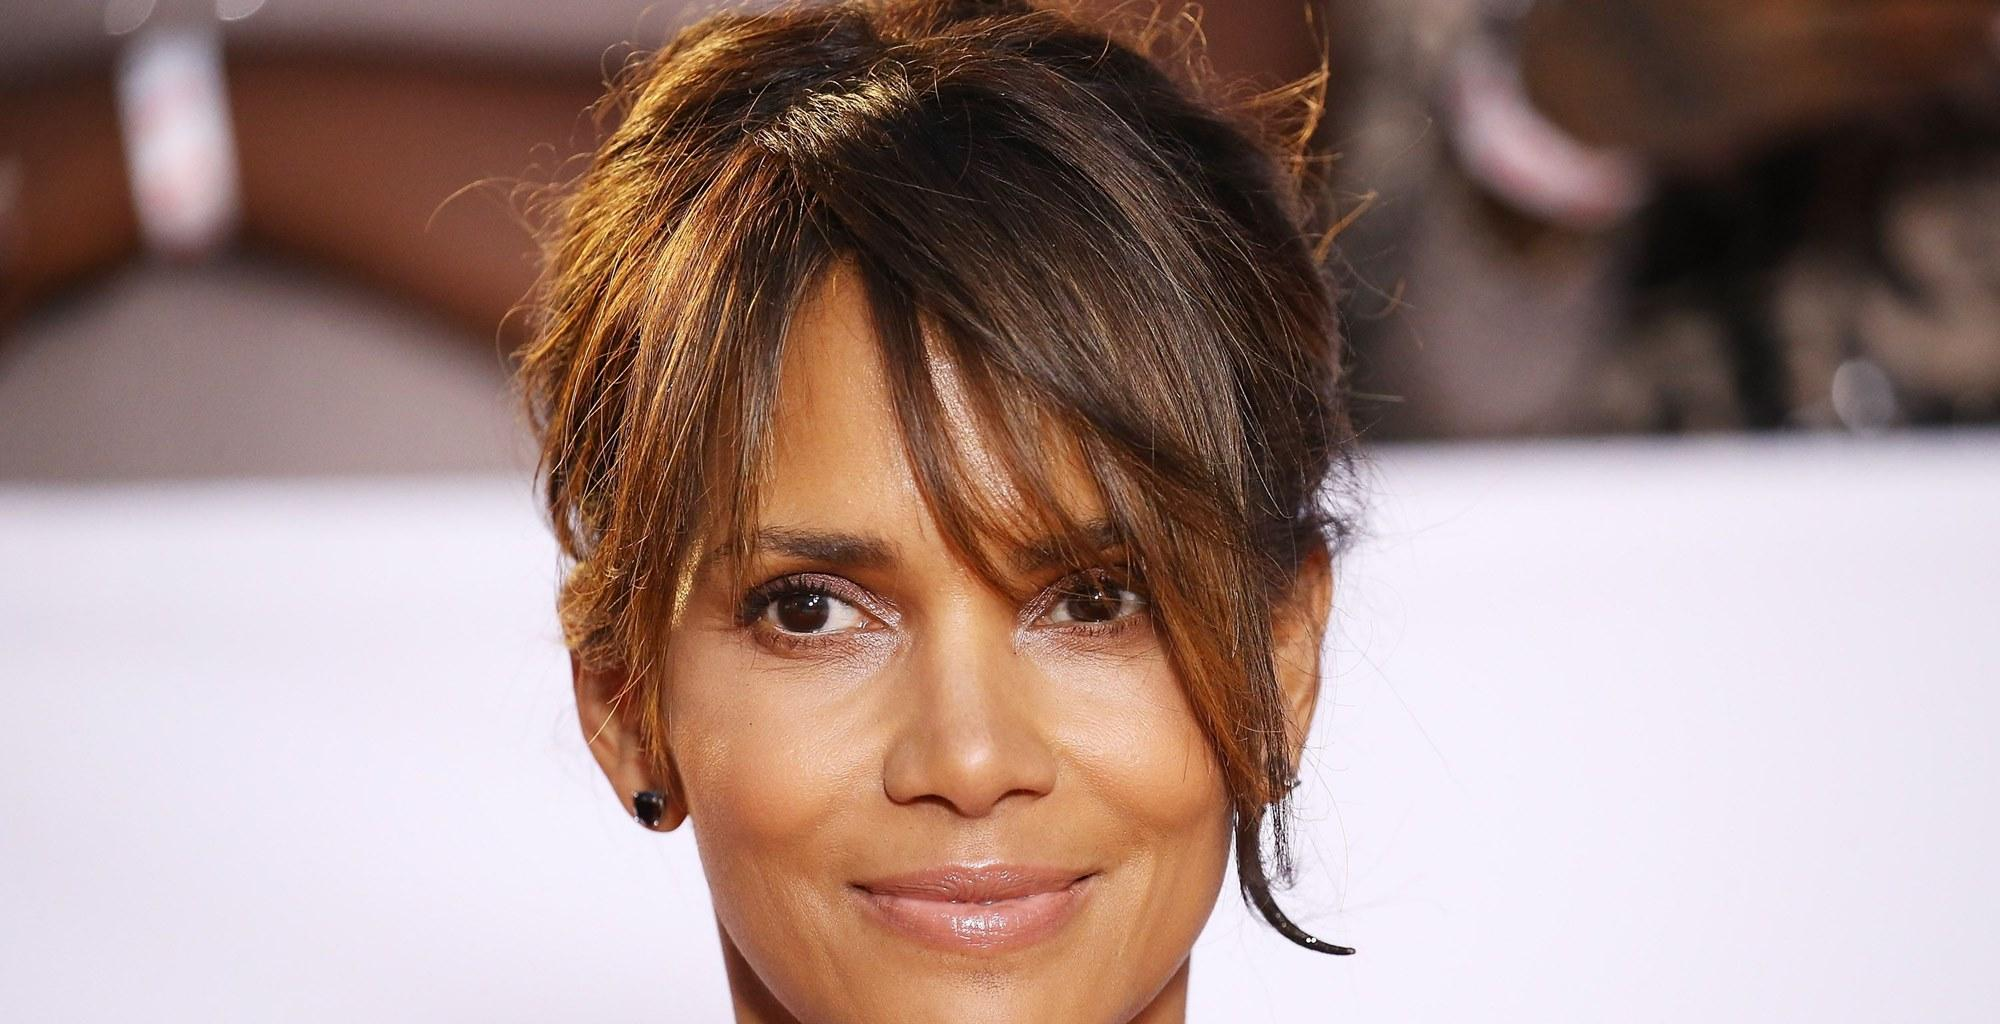 Halle Berry Is Criticized For This Reason After Sharing This Makeup-Free Photo, She Responds And Wins The Internet Over